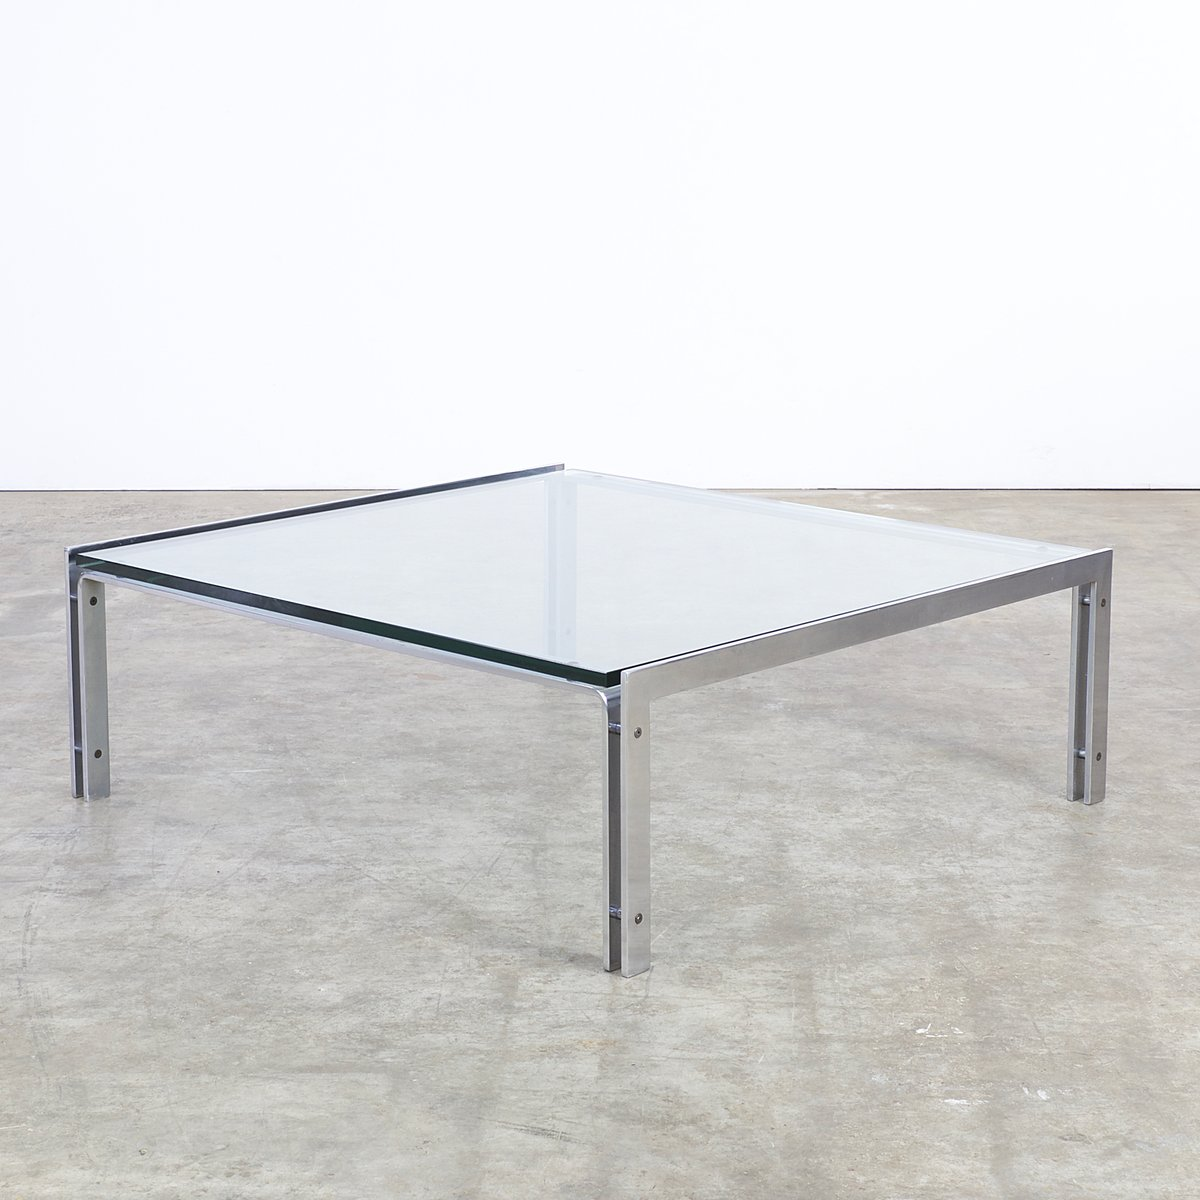 M1 Glass Chrome Coffee Table from Metaform 1970s for sale at Pamono